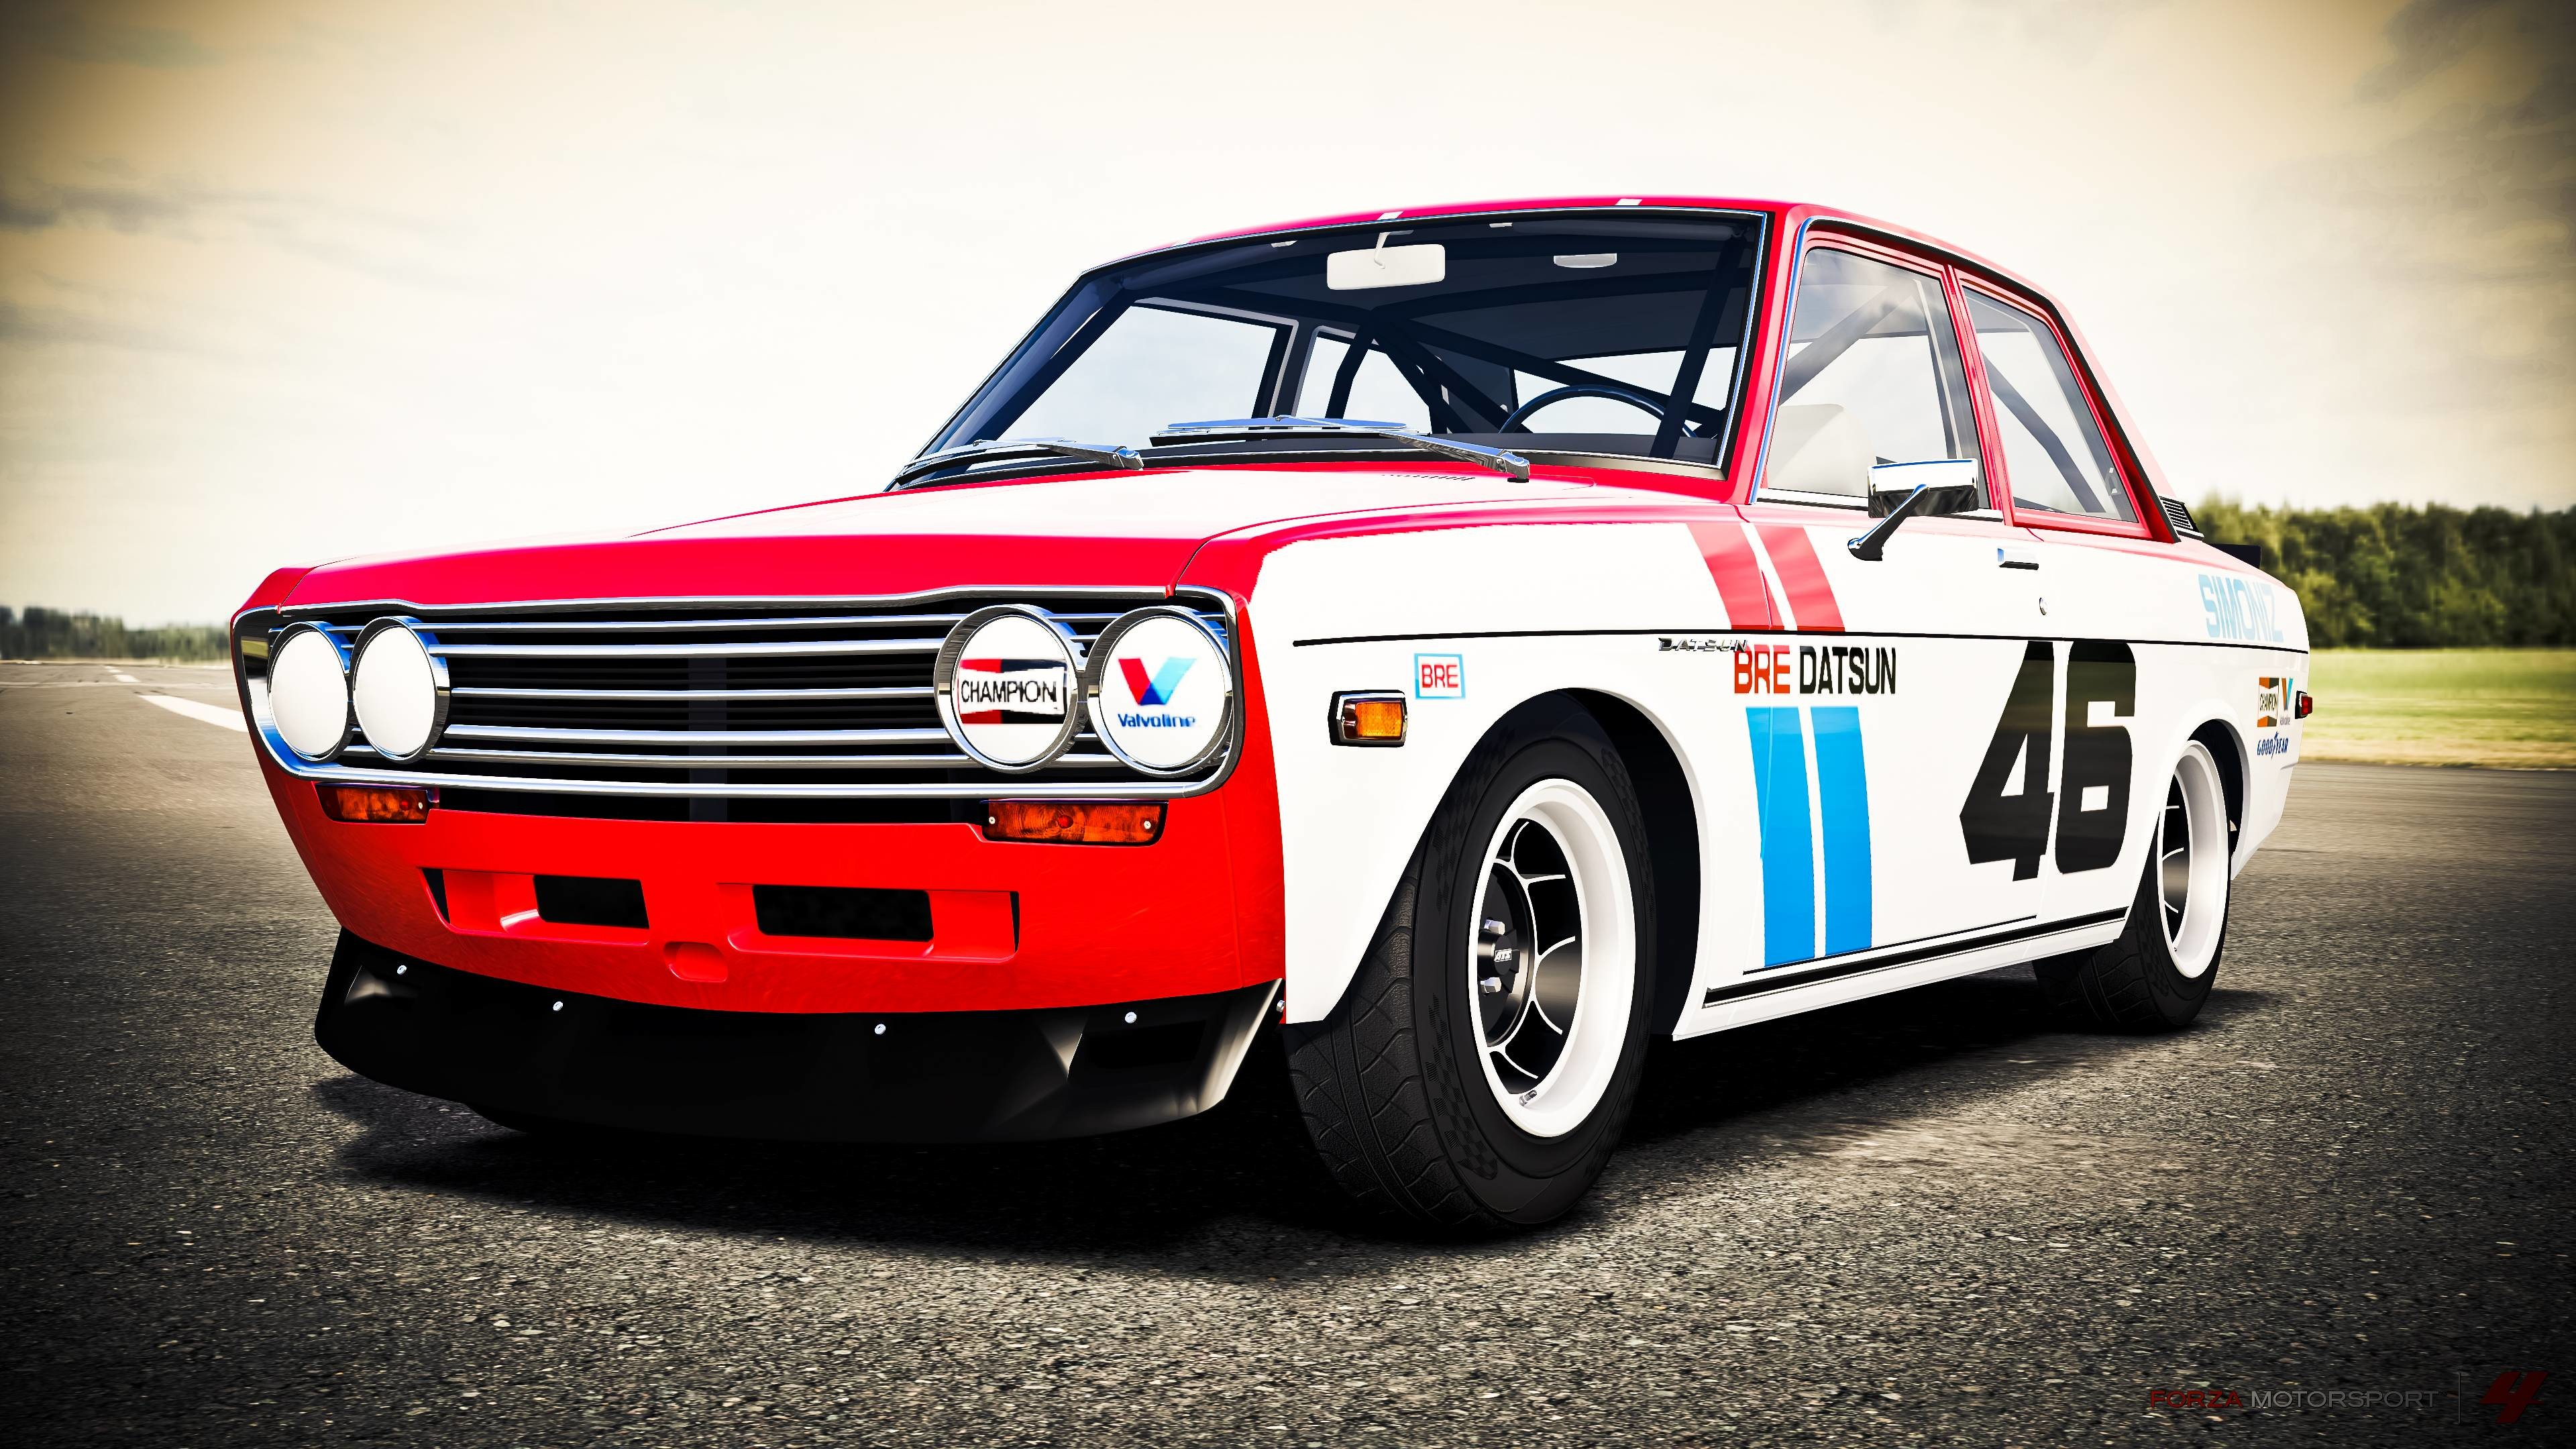 3840x2160 - Datsun Wallpapers 16